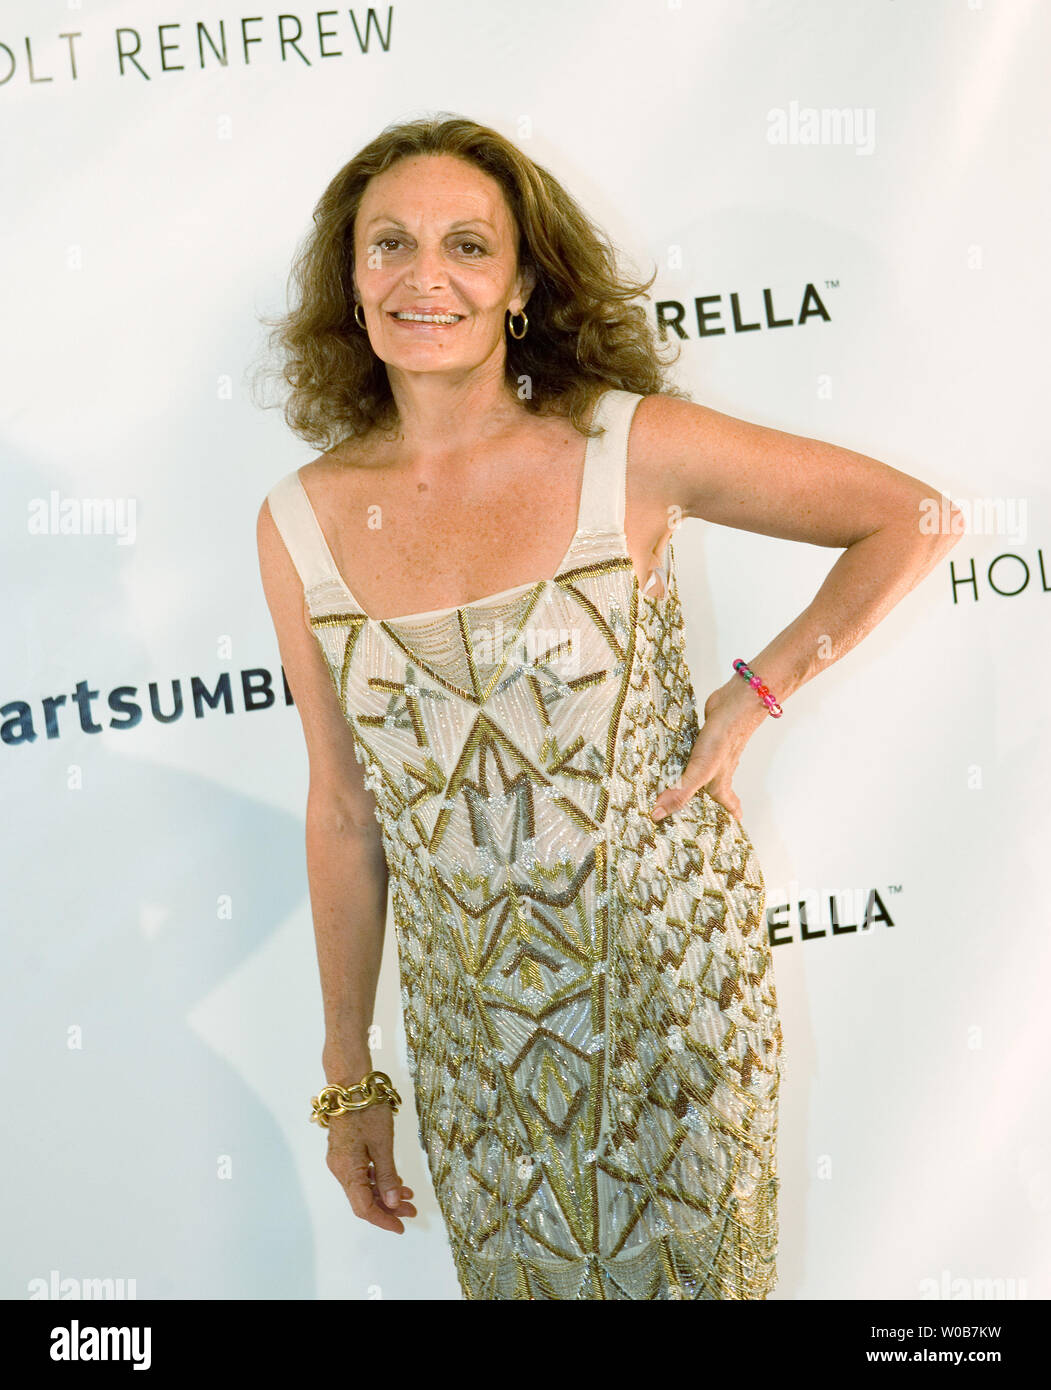 Fashion Designer Diane Von Furstenberg Walks Onstage Before The Start Of Her Fall 2008 Diane Von Furstenberg Fashion Show At The Holt Renfrew Arts Umbrella Benefit In Vancouver British Columbia May 6